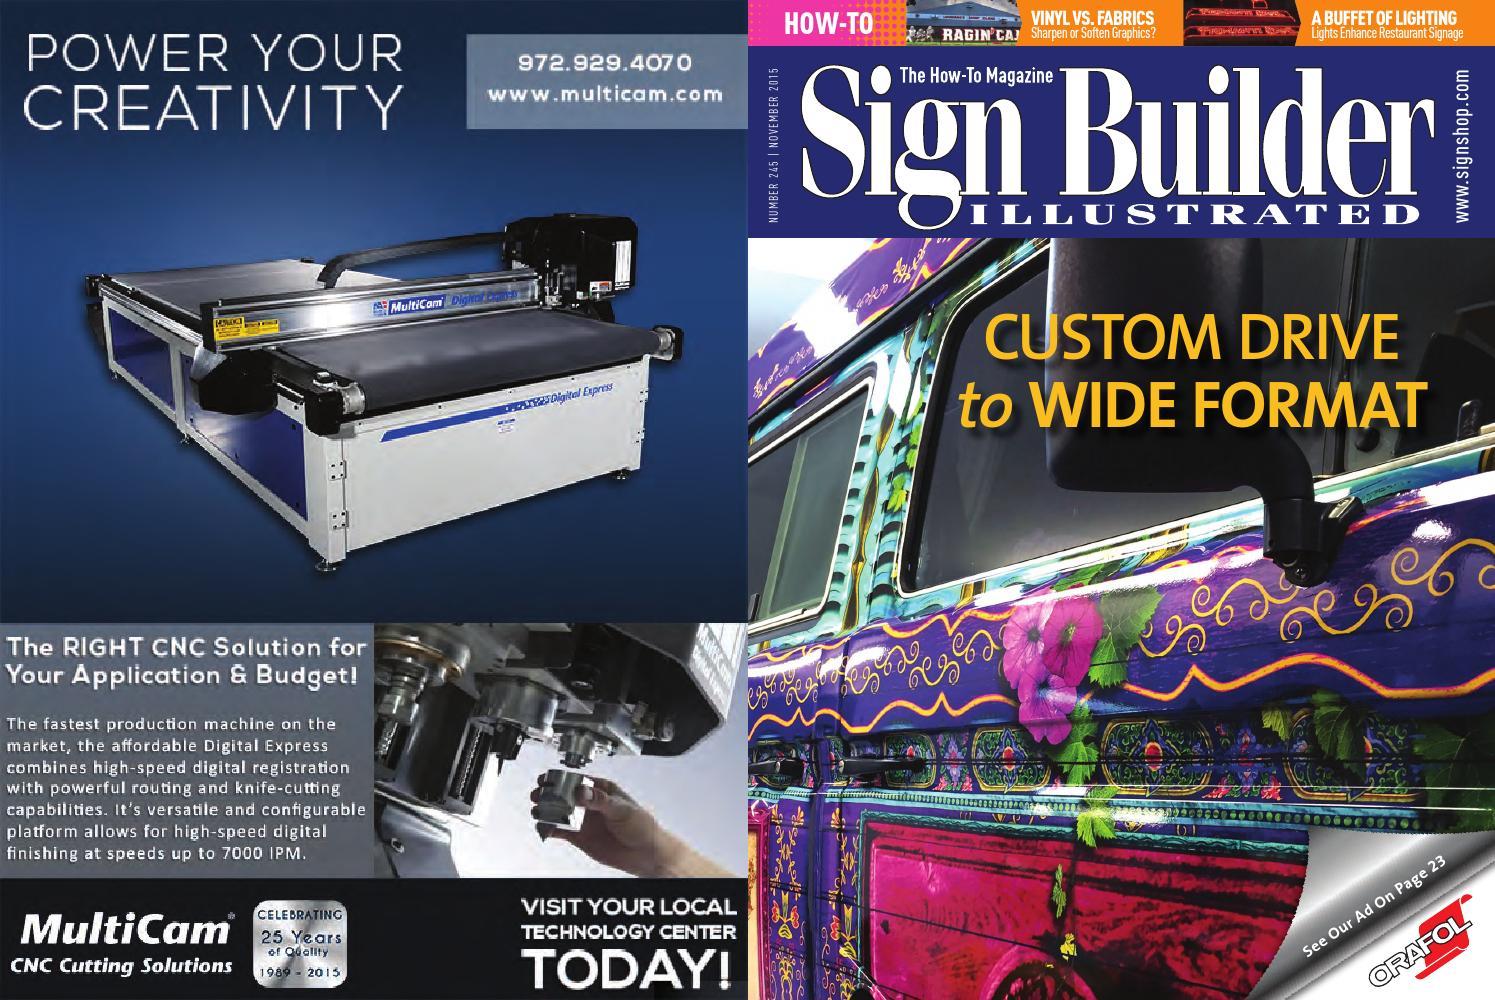 hight resolution of sign builder illustrated november 2015 by sign builder illustrated issuu